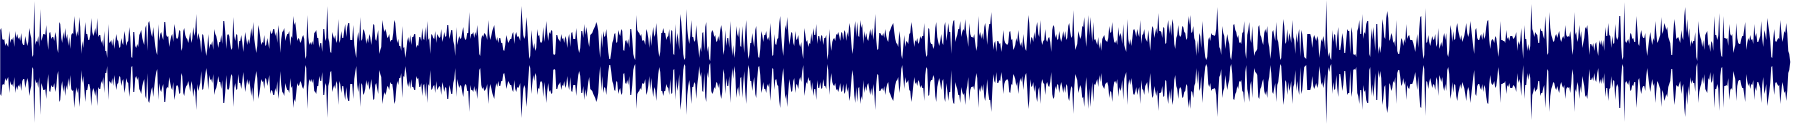 waveform of track #69693